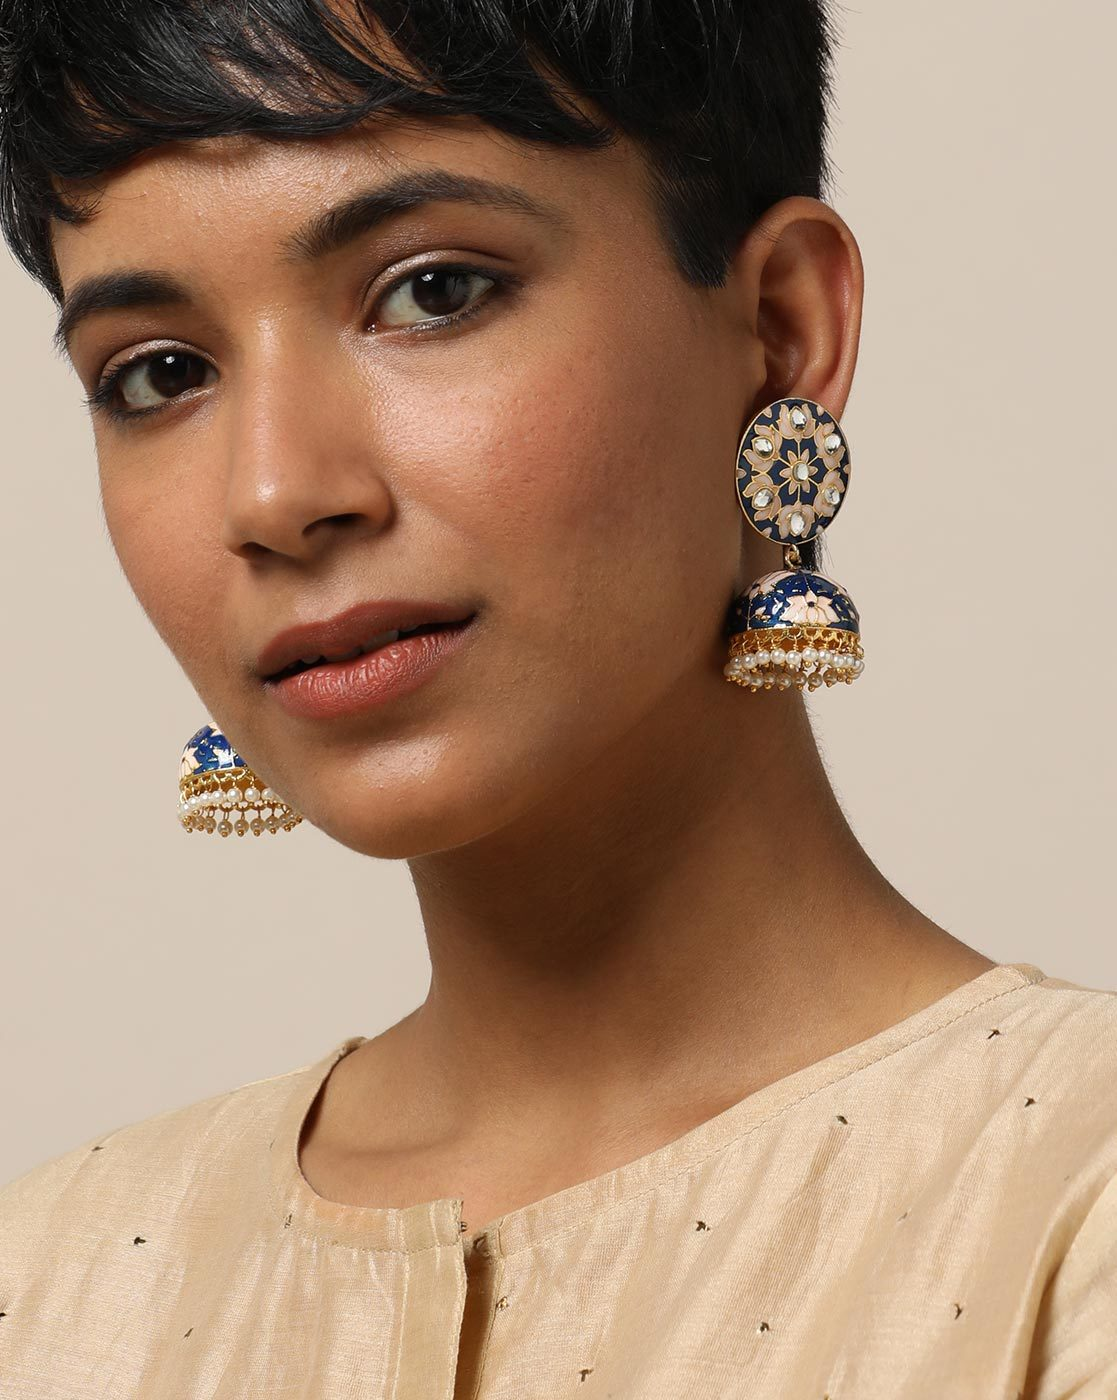 6 ajio jhumkas accessories will never go out of style